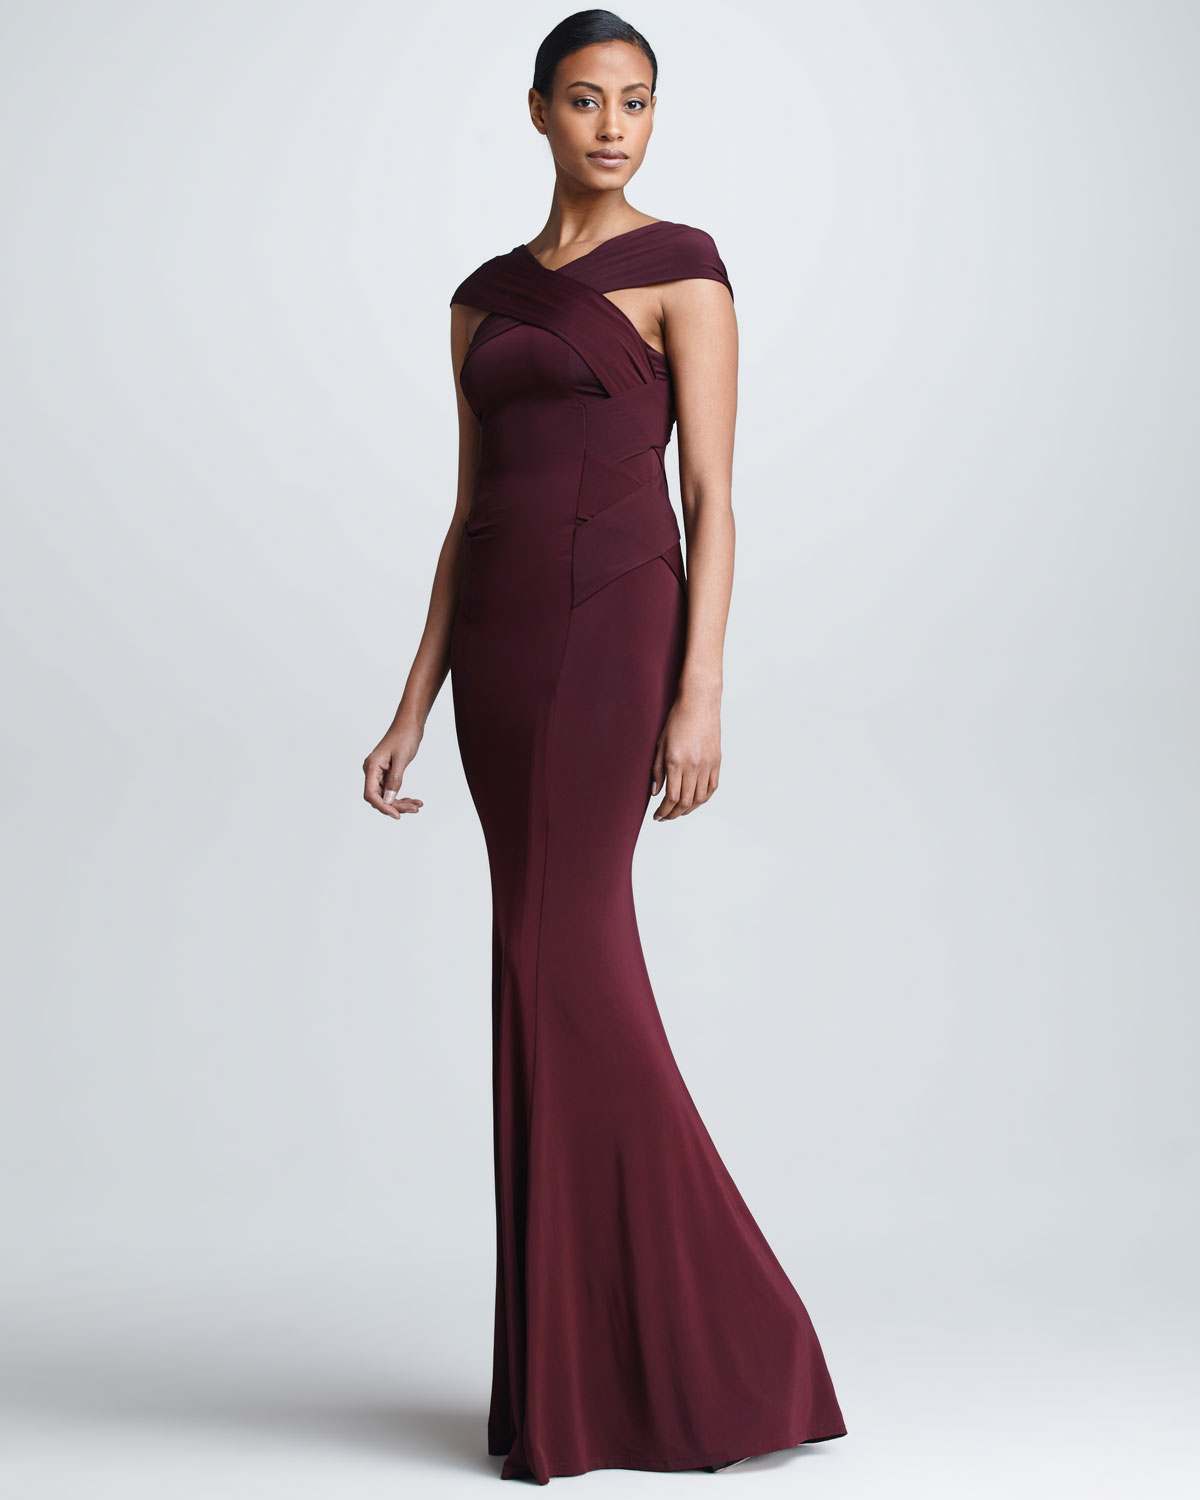 Neiman marcus evening gowns collection fashion dresses neiman marcus evening gowns collection junglespirit Gallery